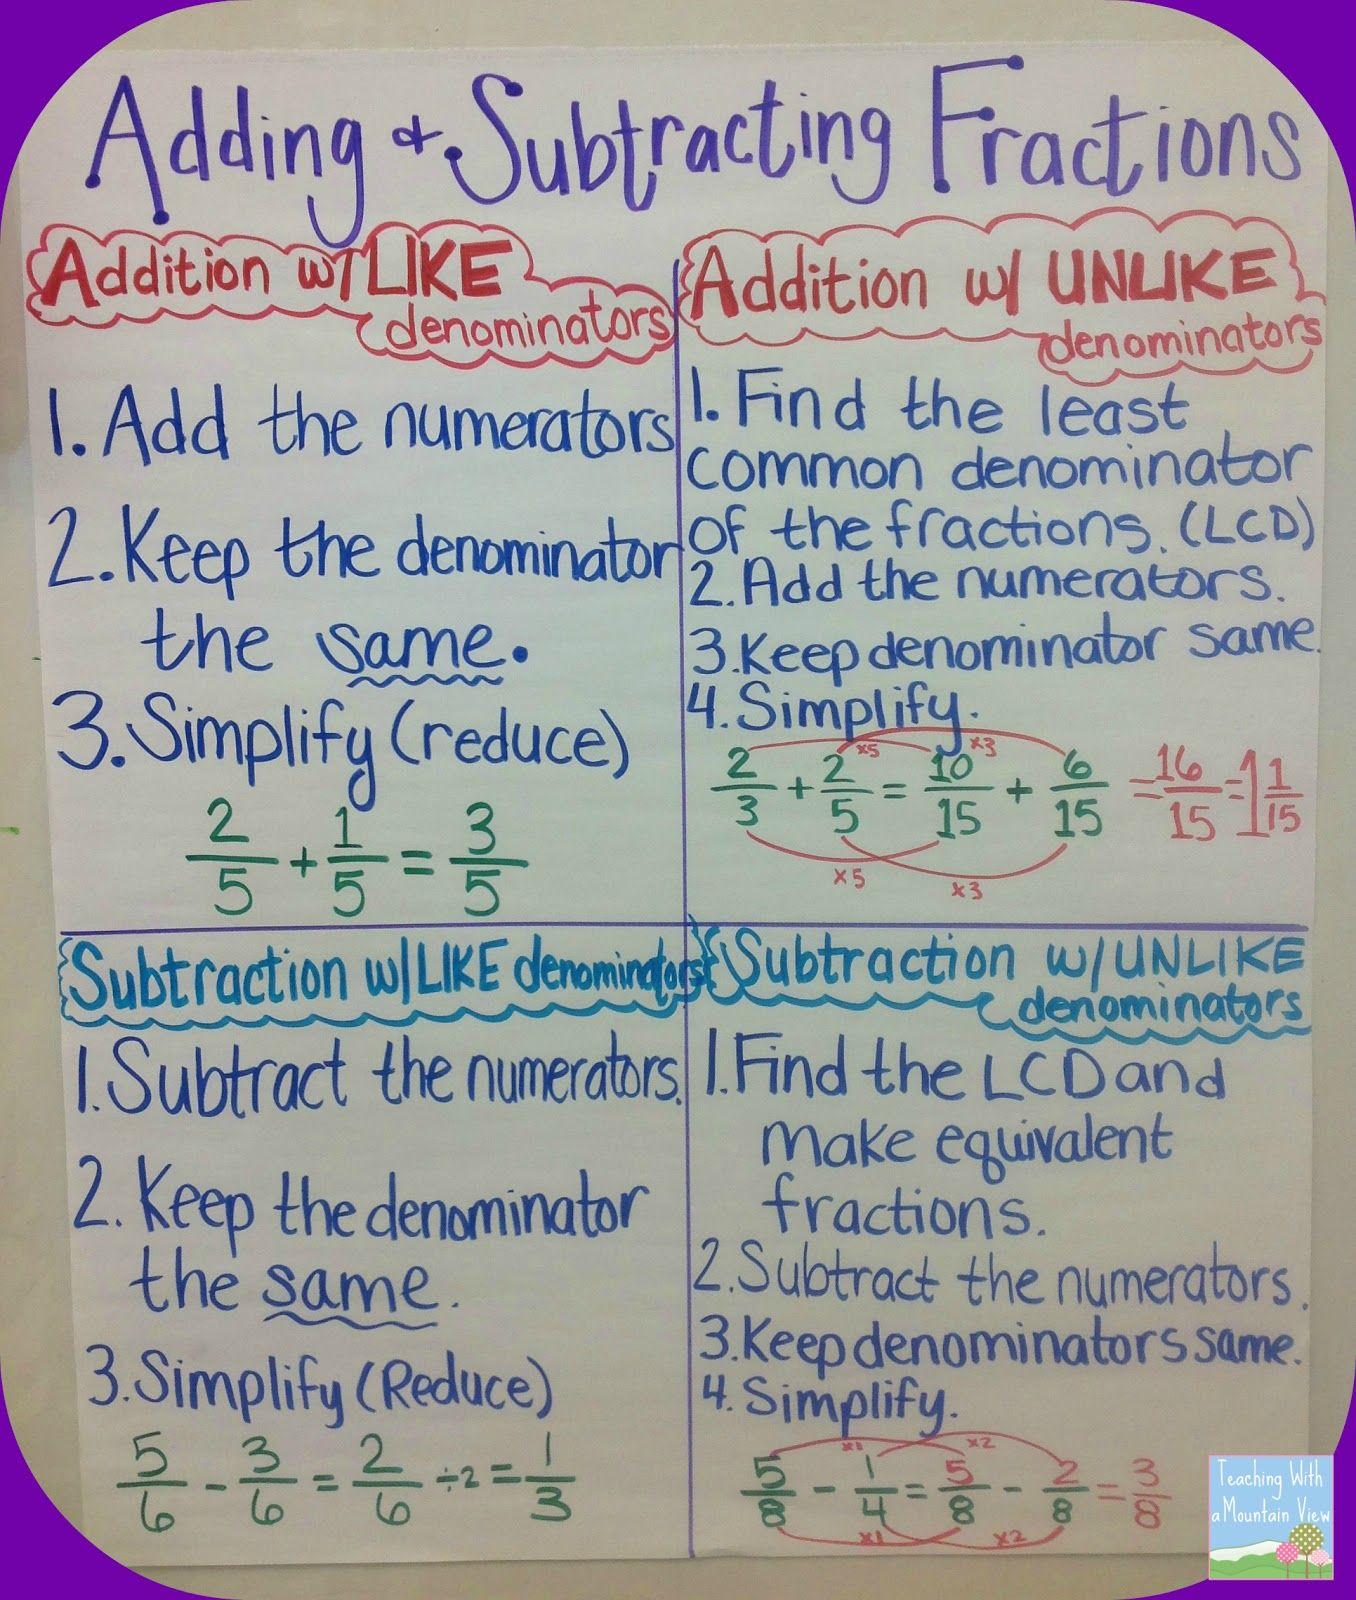 Adding & Subtracting Fractions | Mathe